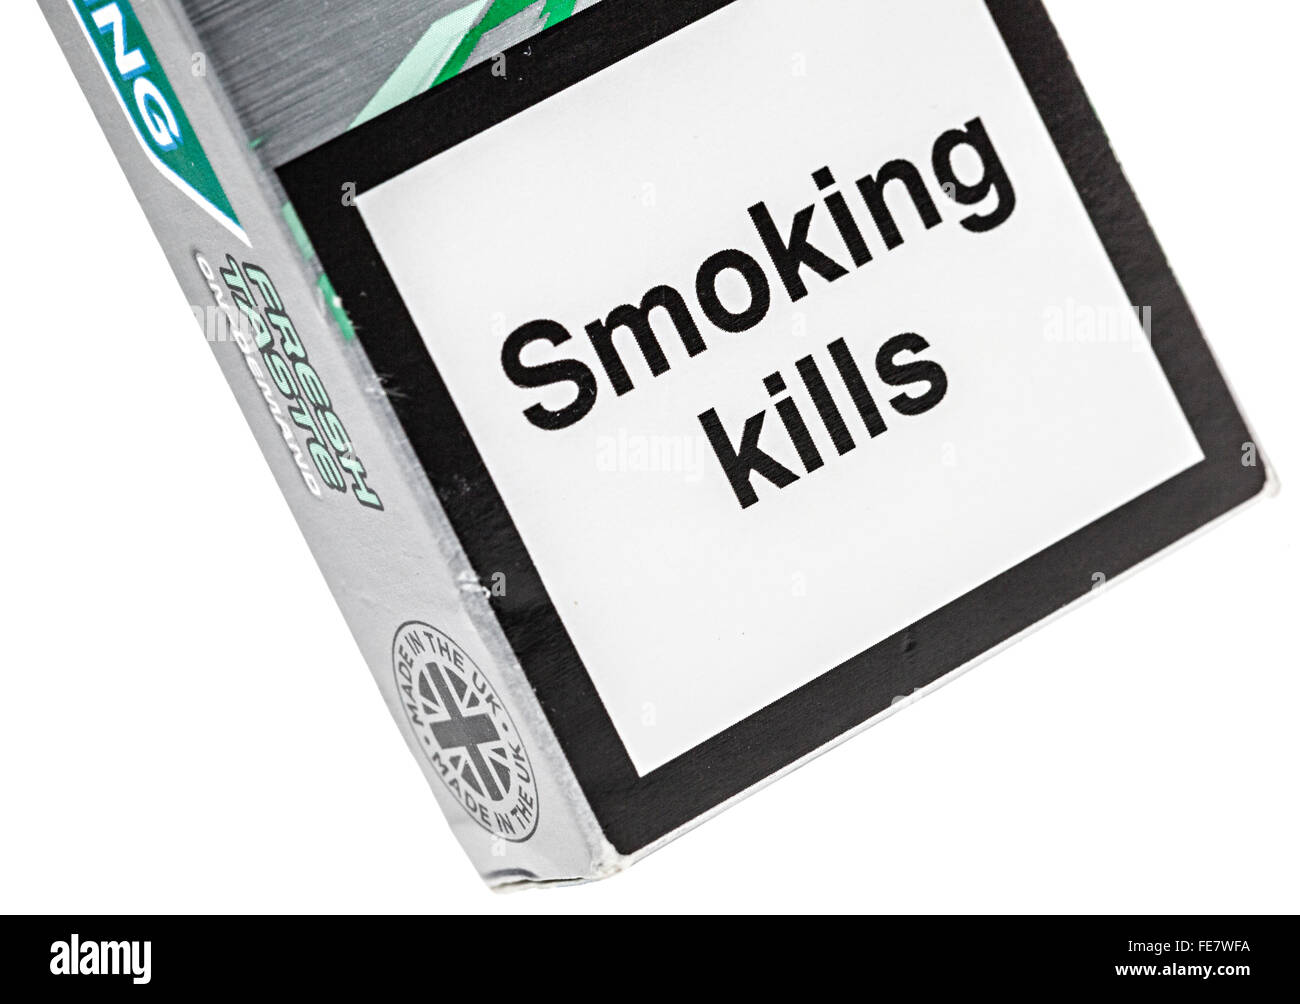 Smoking Kills notice on cigarette packet - Stock Image